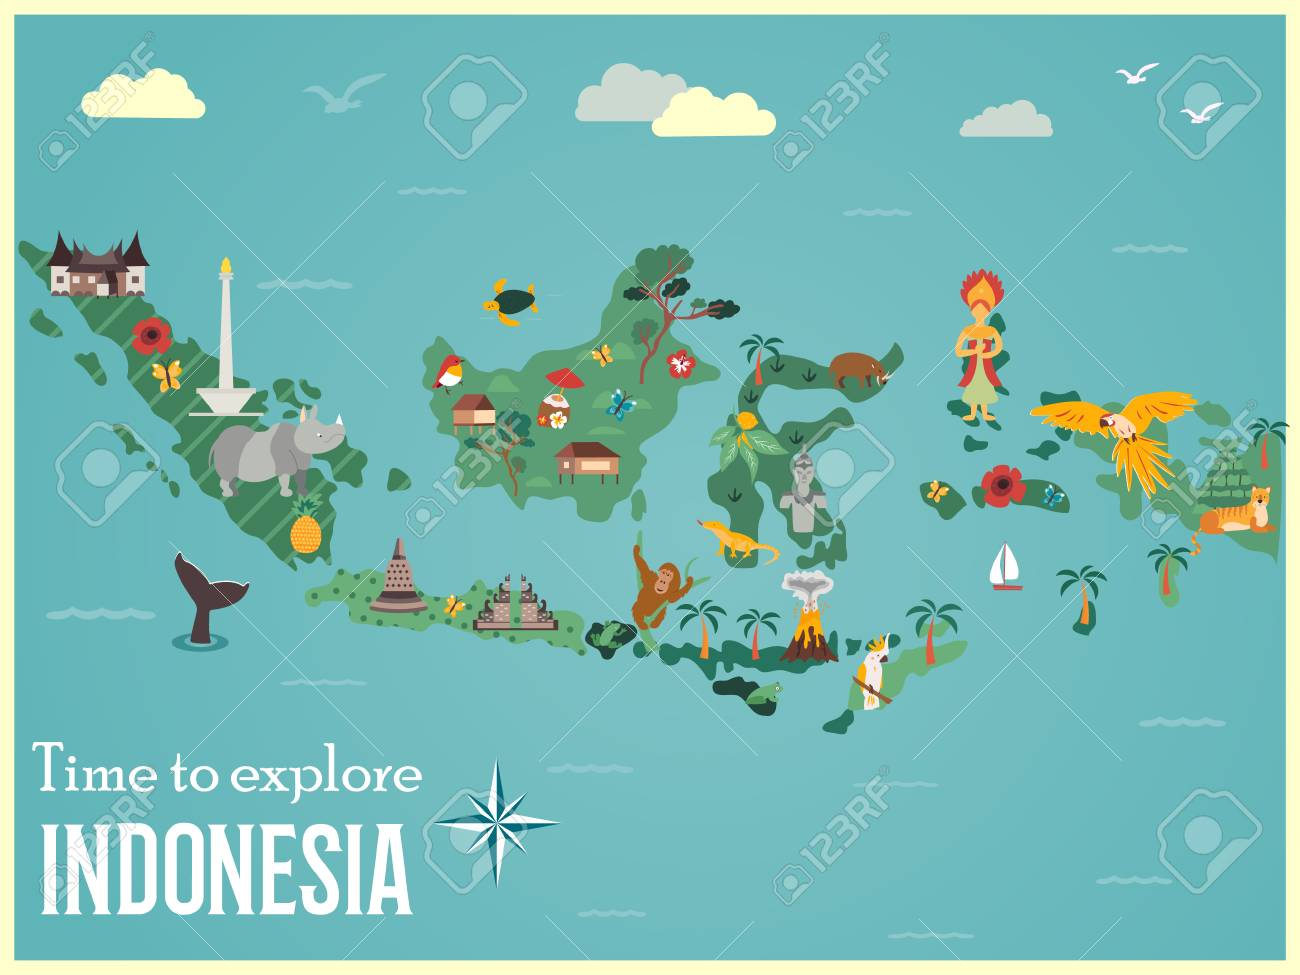 Indonesian map with animals and landmarks - 103945553